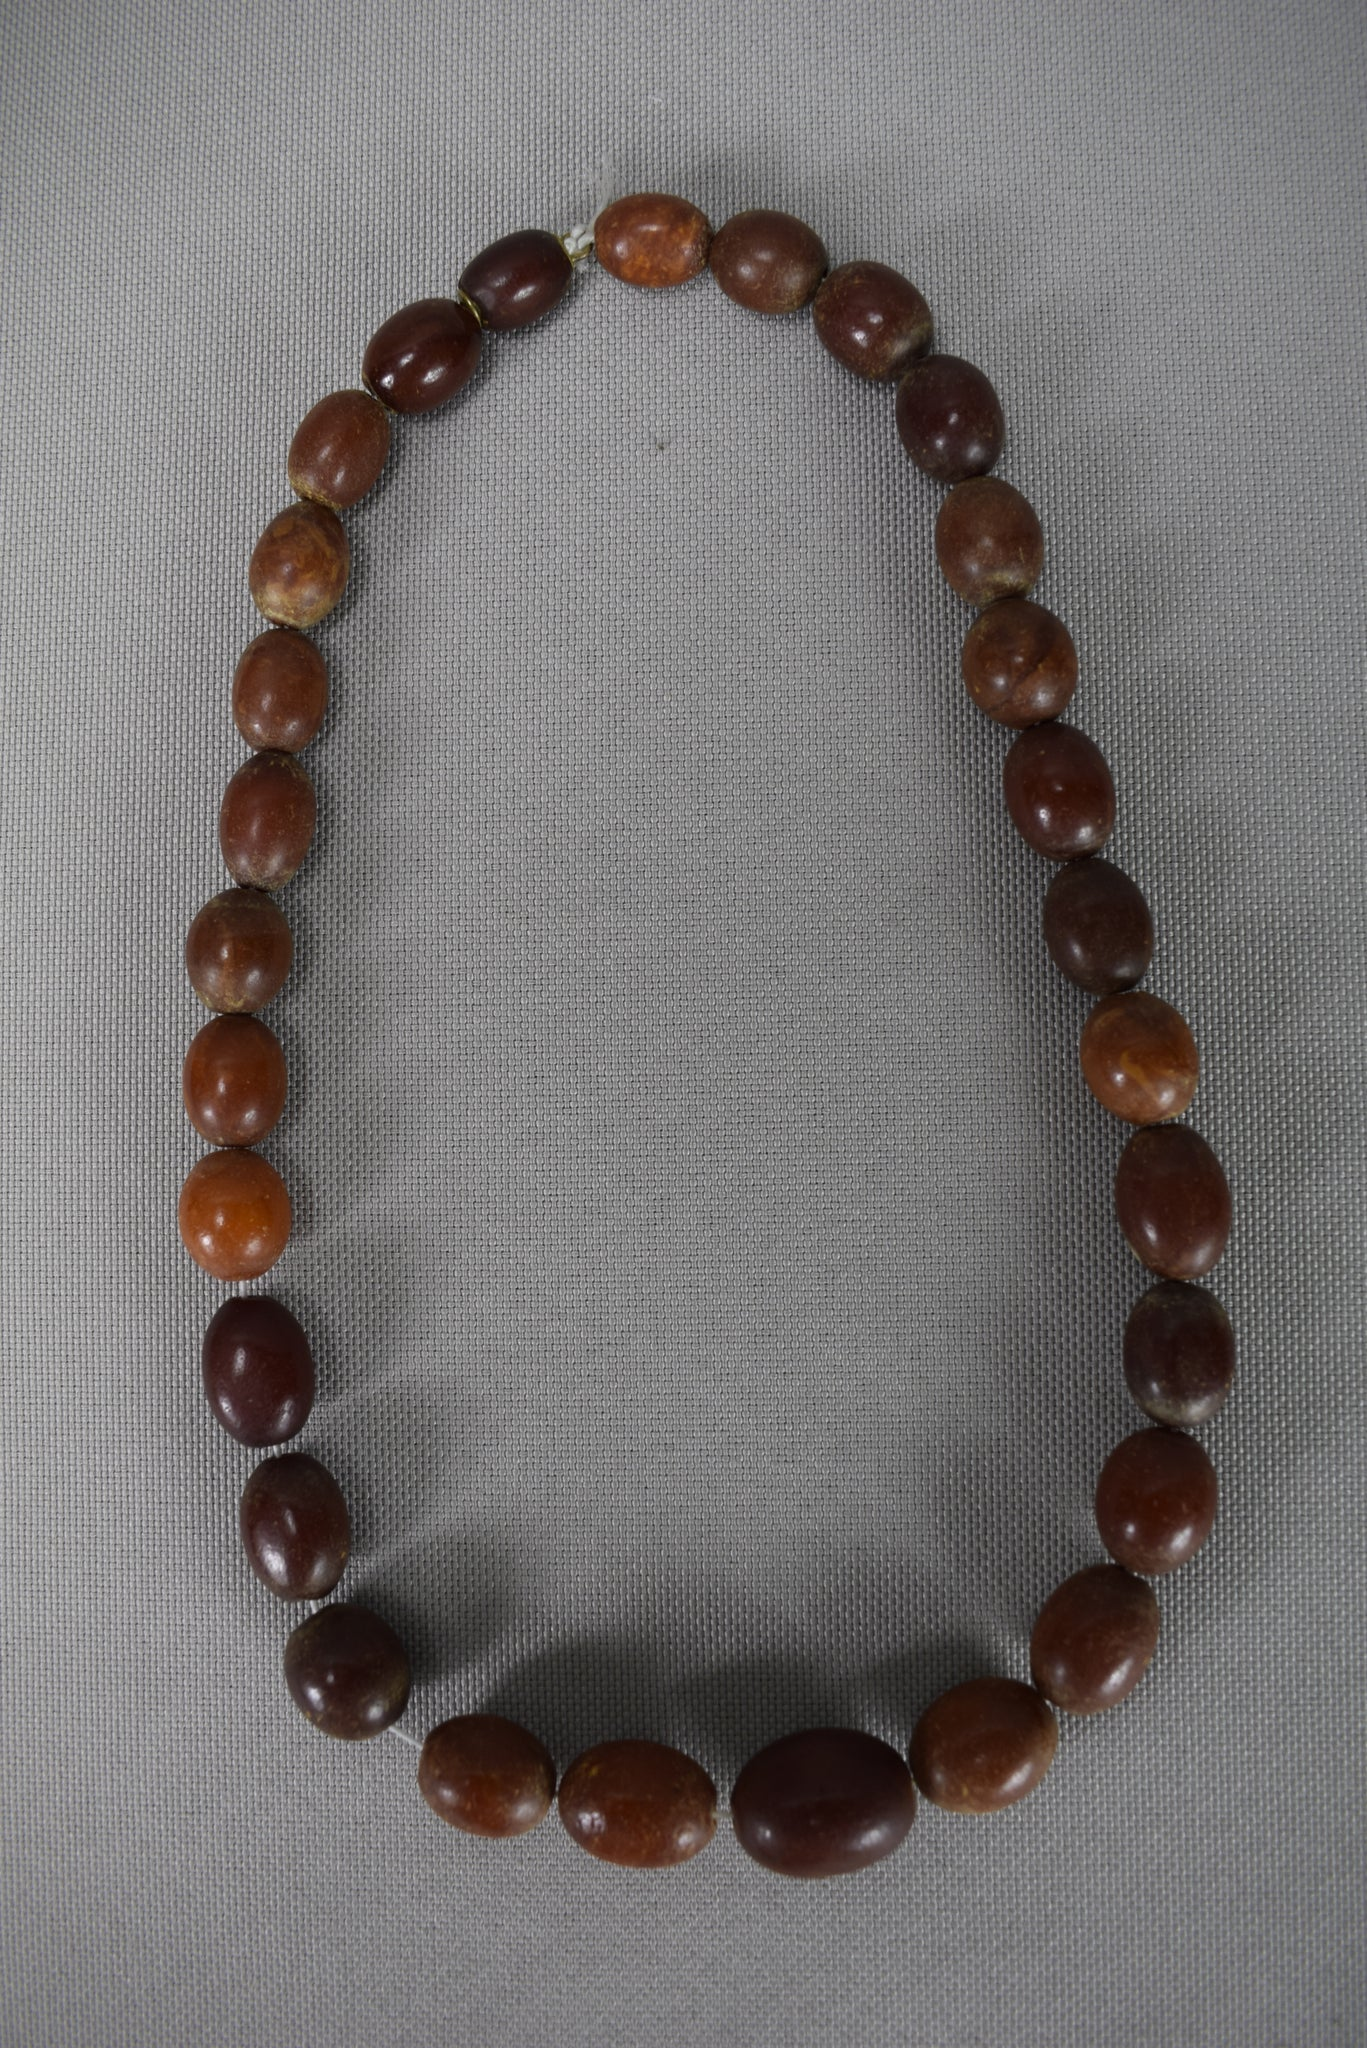 Red Cherry Amber Necklace 54g